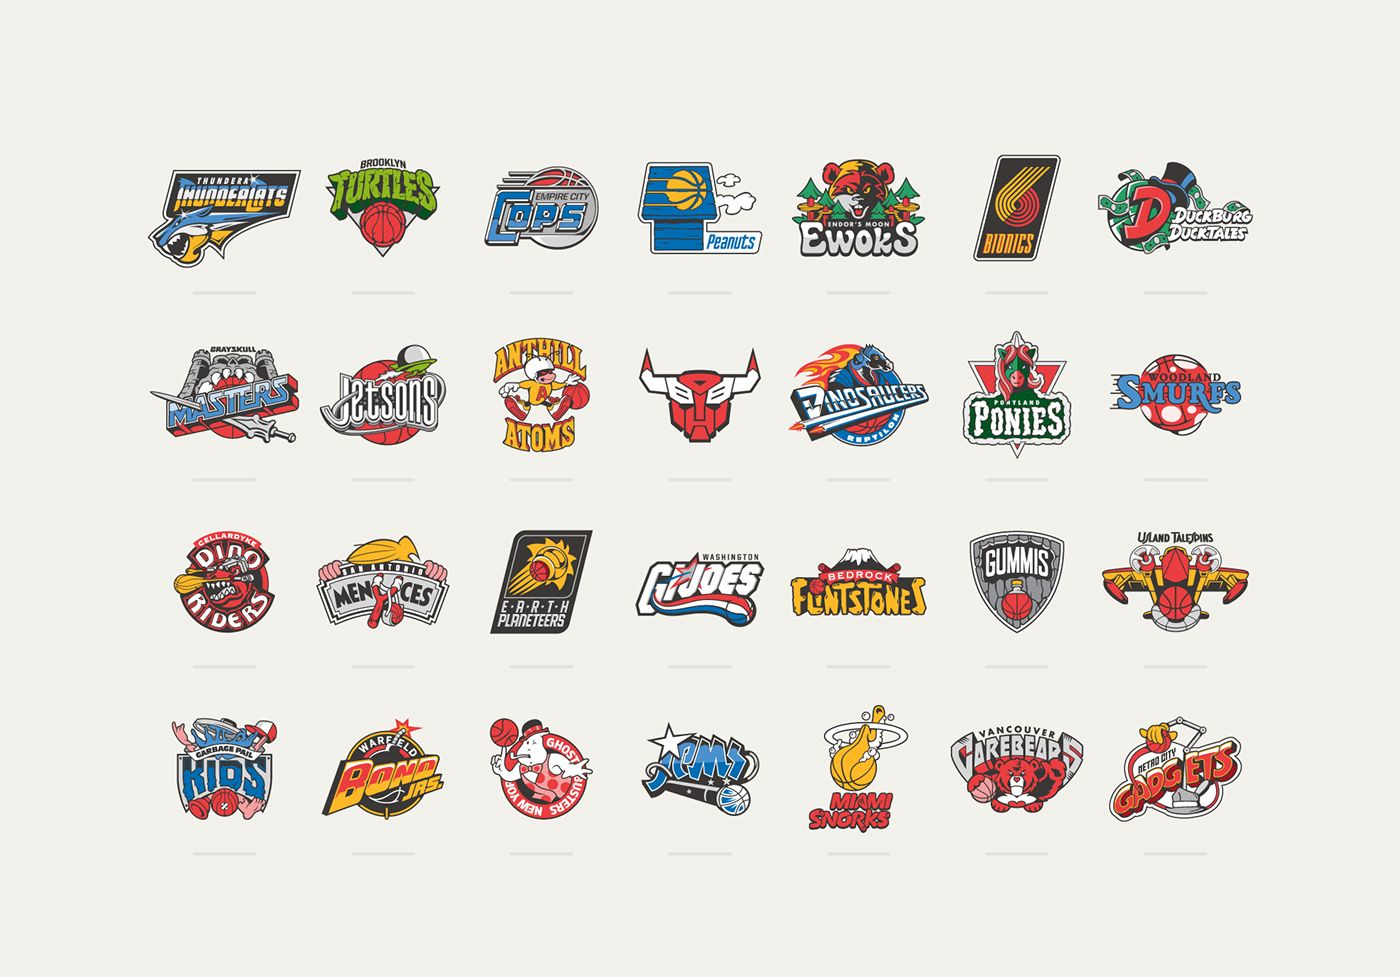 Here is the full set of logos we created as a tribute mash